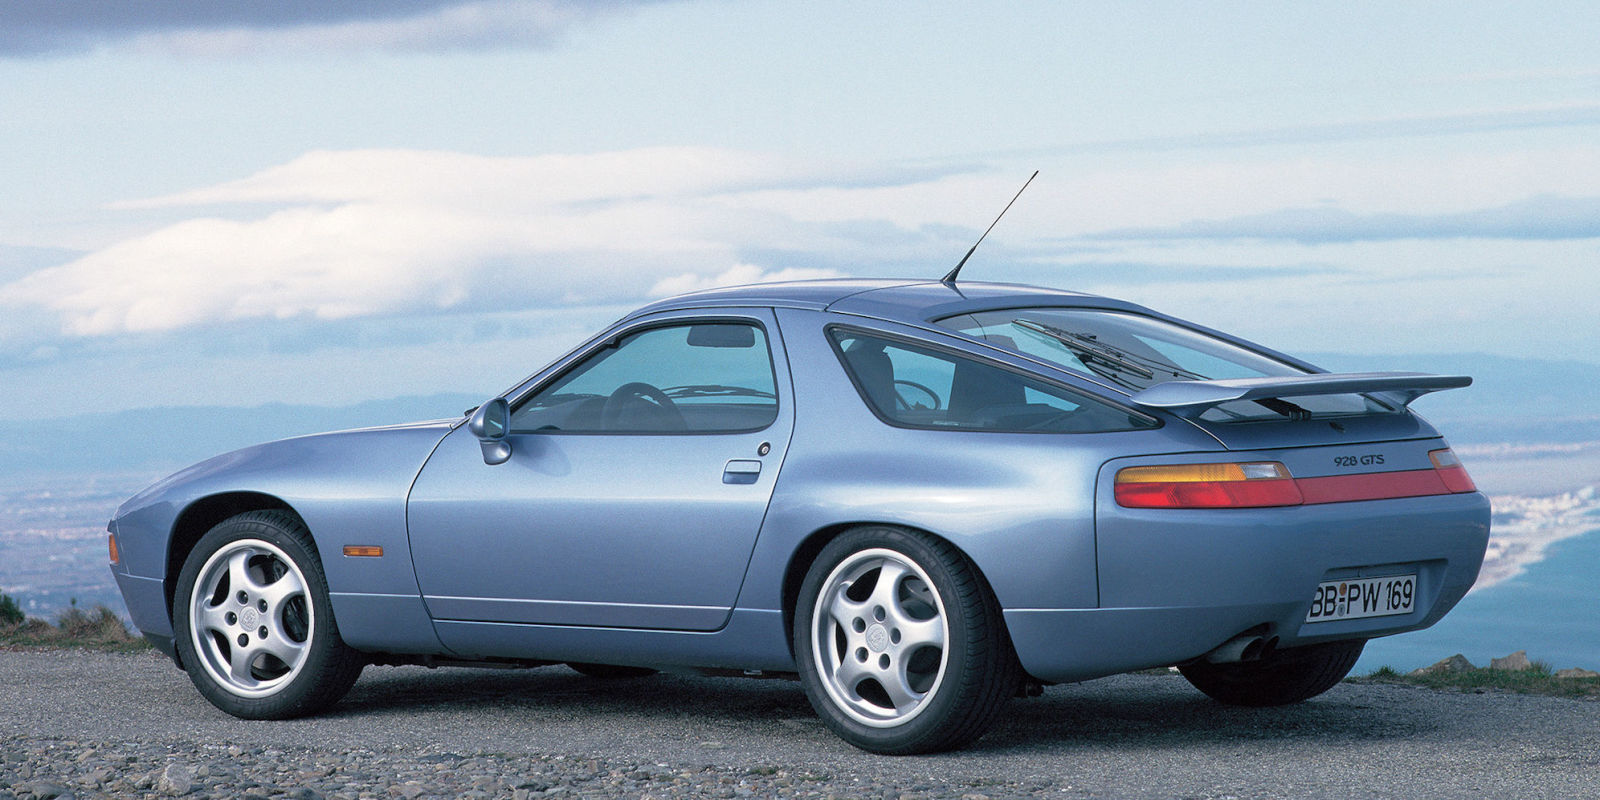 The 1993 Porsche 928 Gts Was A Glorious Final Act